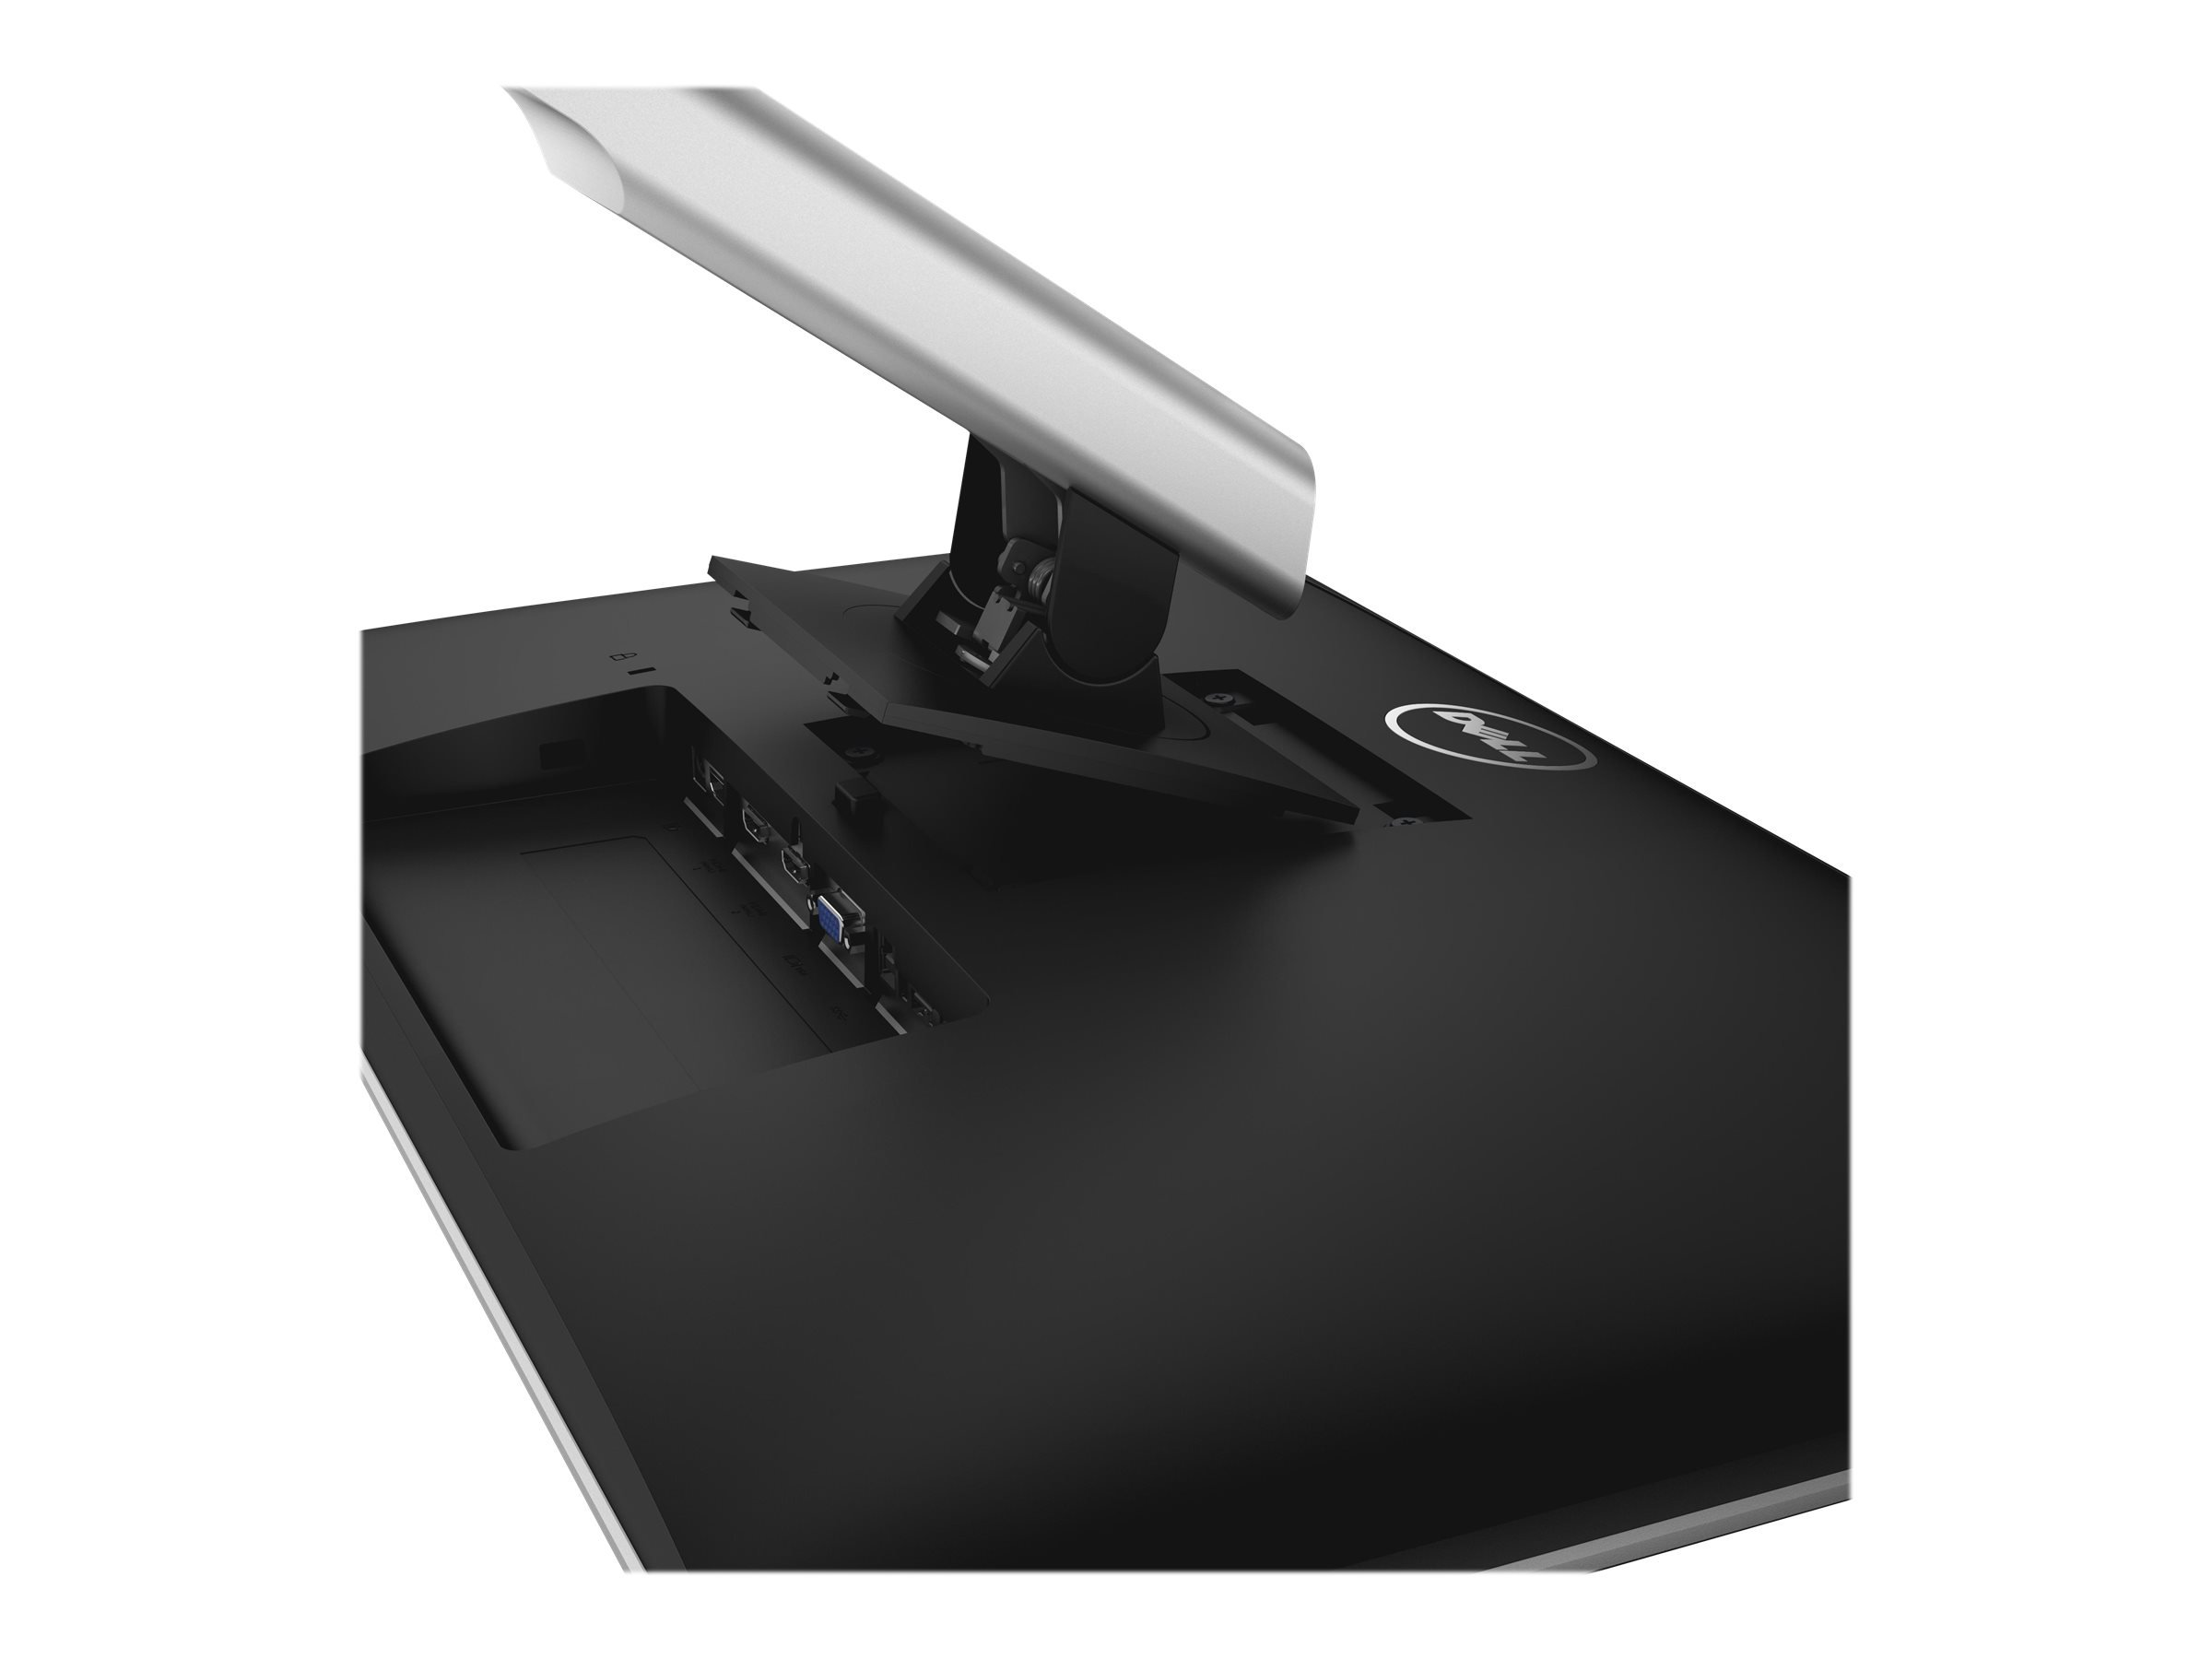 Dell Ultrasharp UZ2315H 23-Inch Screen LED-Lit Full HD Monitor with Webcam and Speakers by Dell (Image #14)